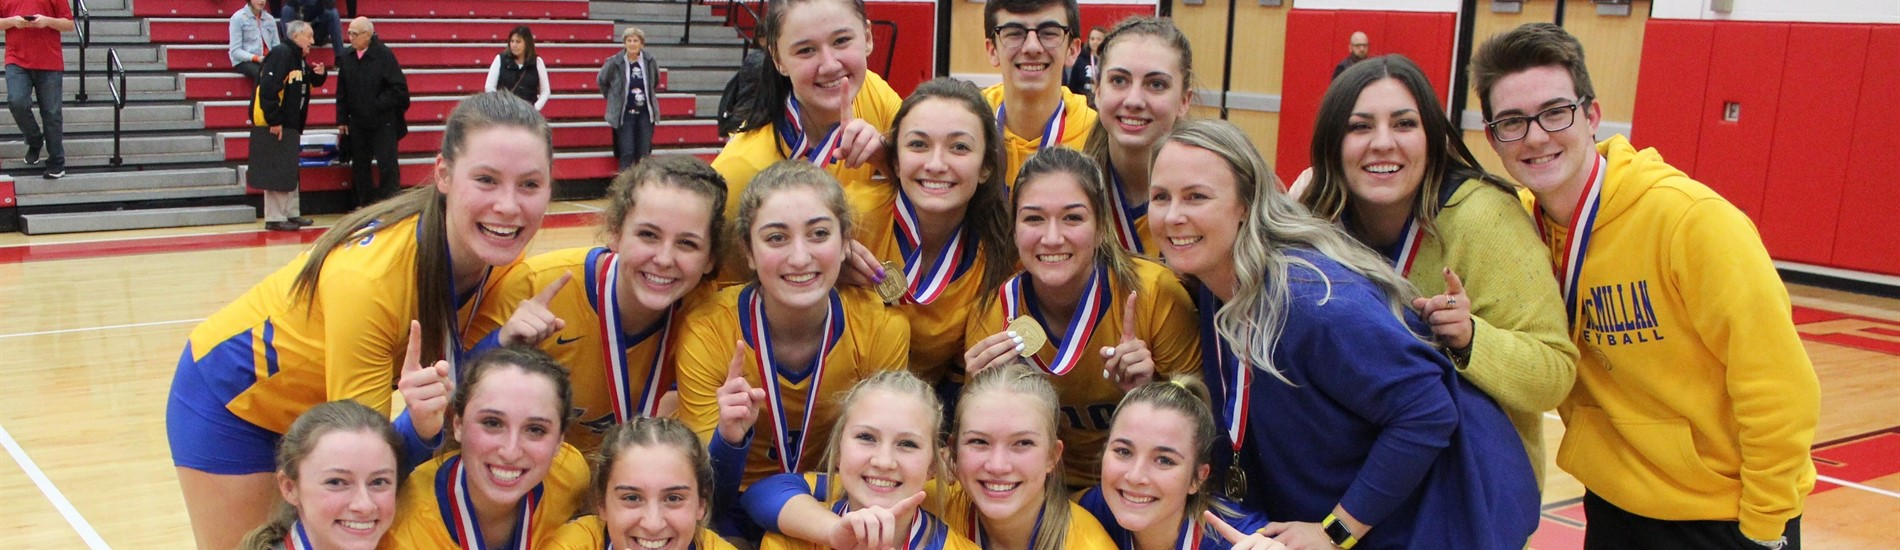 2019 WPIAL Champions - Girls Volleyball